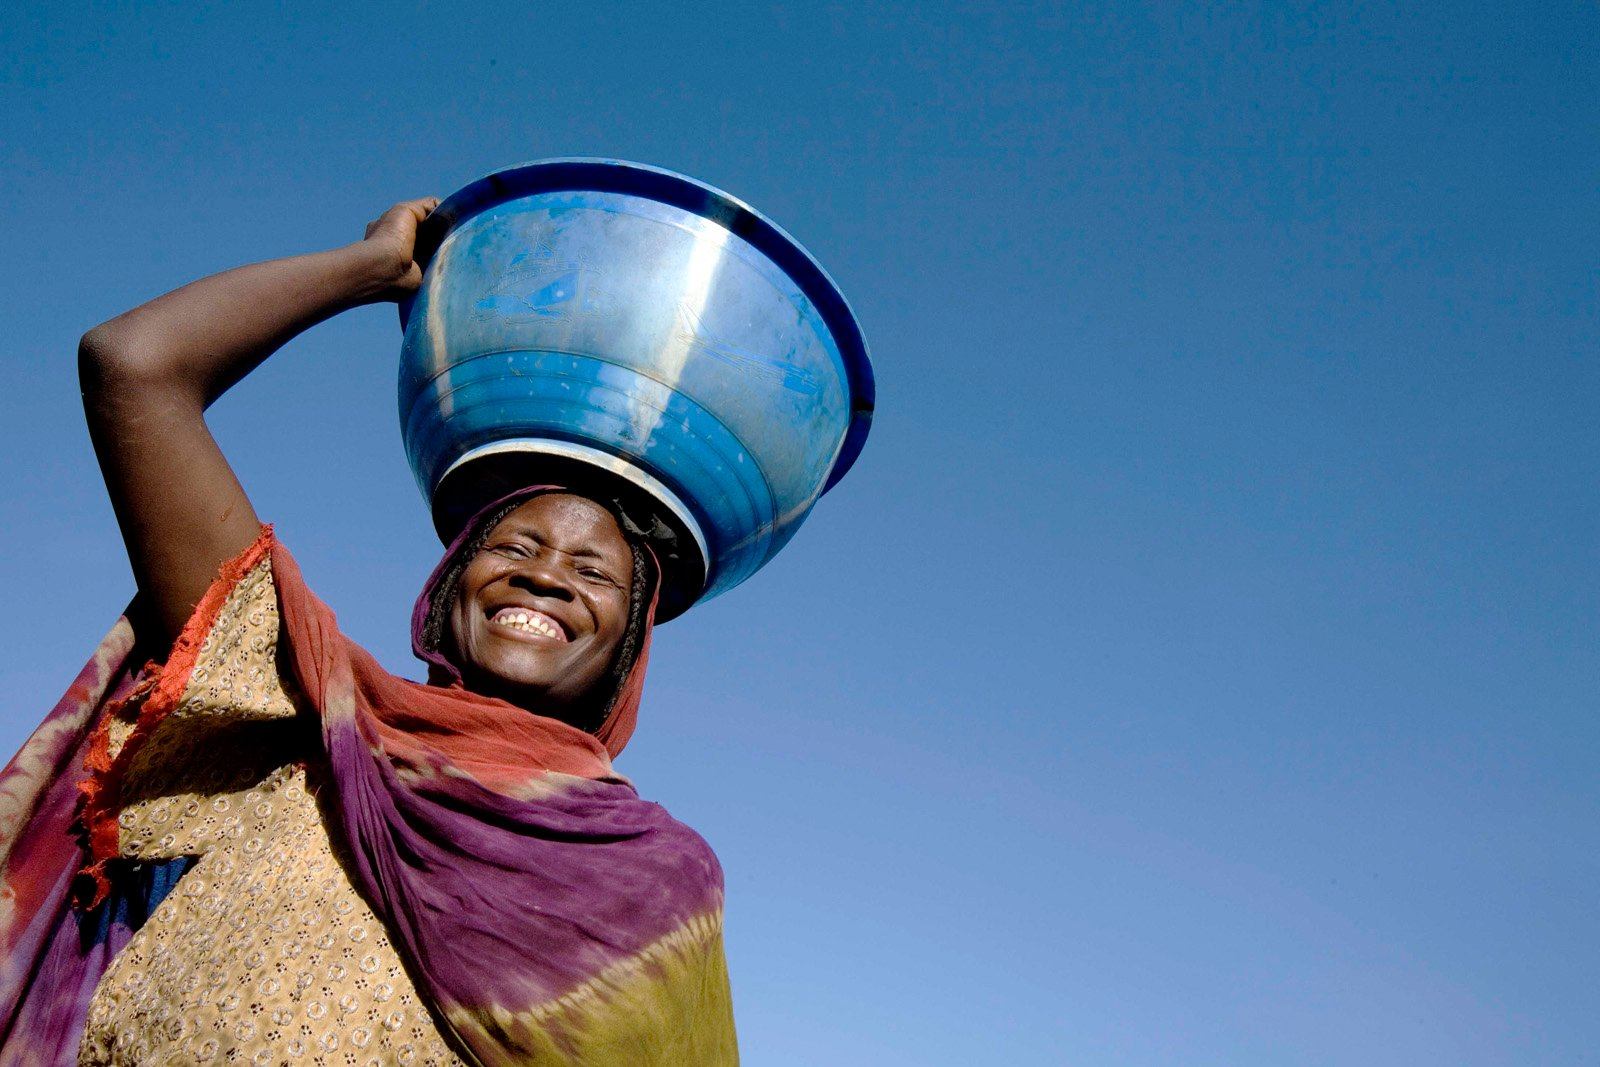 A woman carries water on her head at a settlement for displaced people in Goz Baeda, Eastern Chad